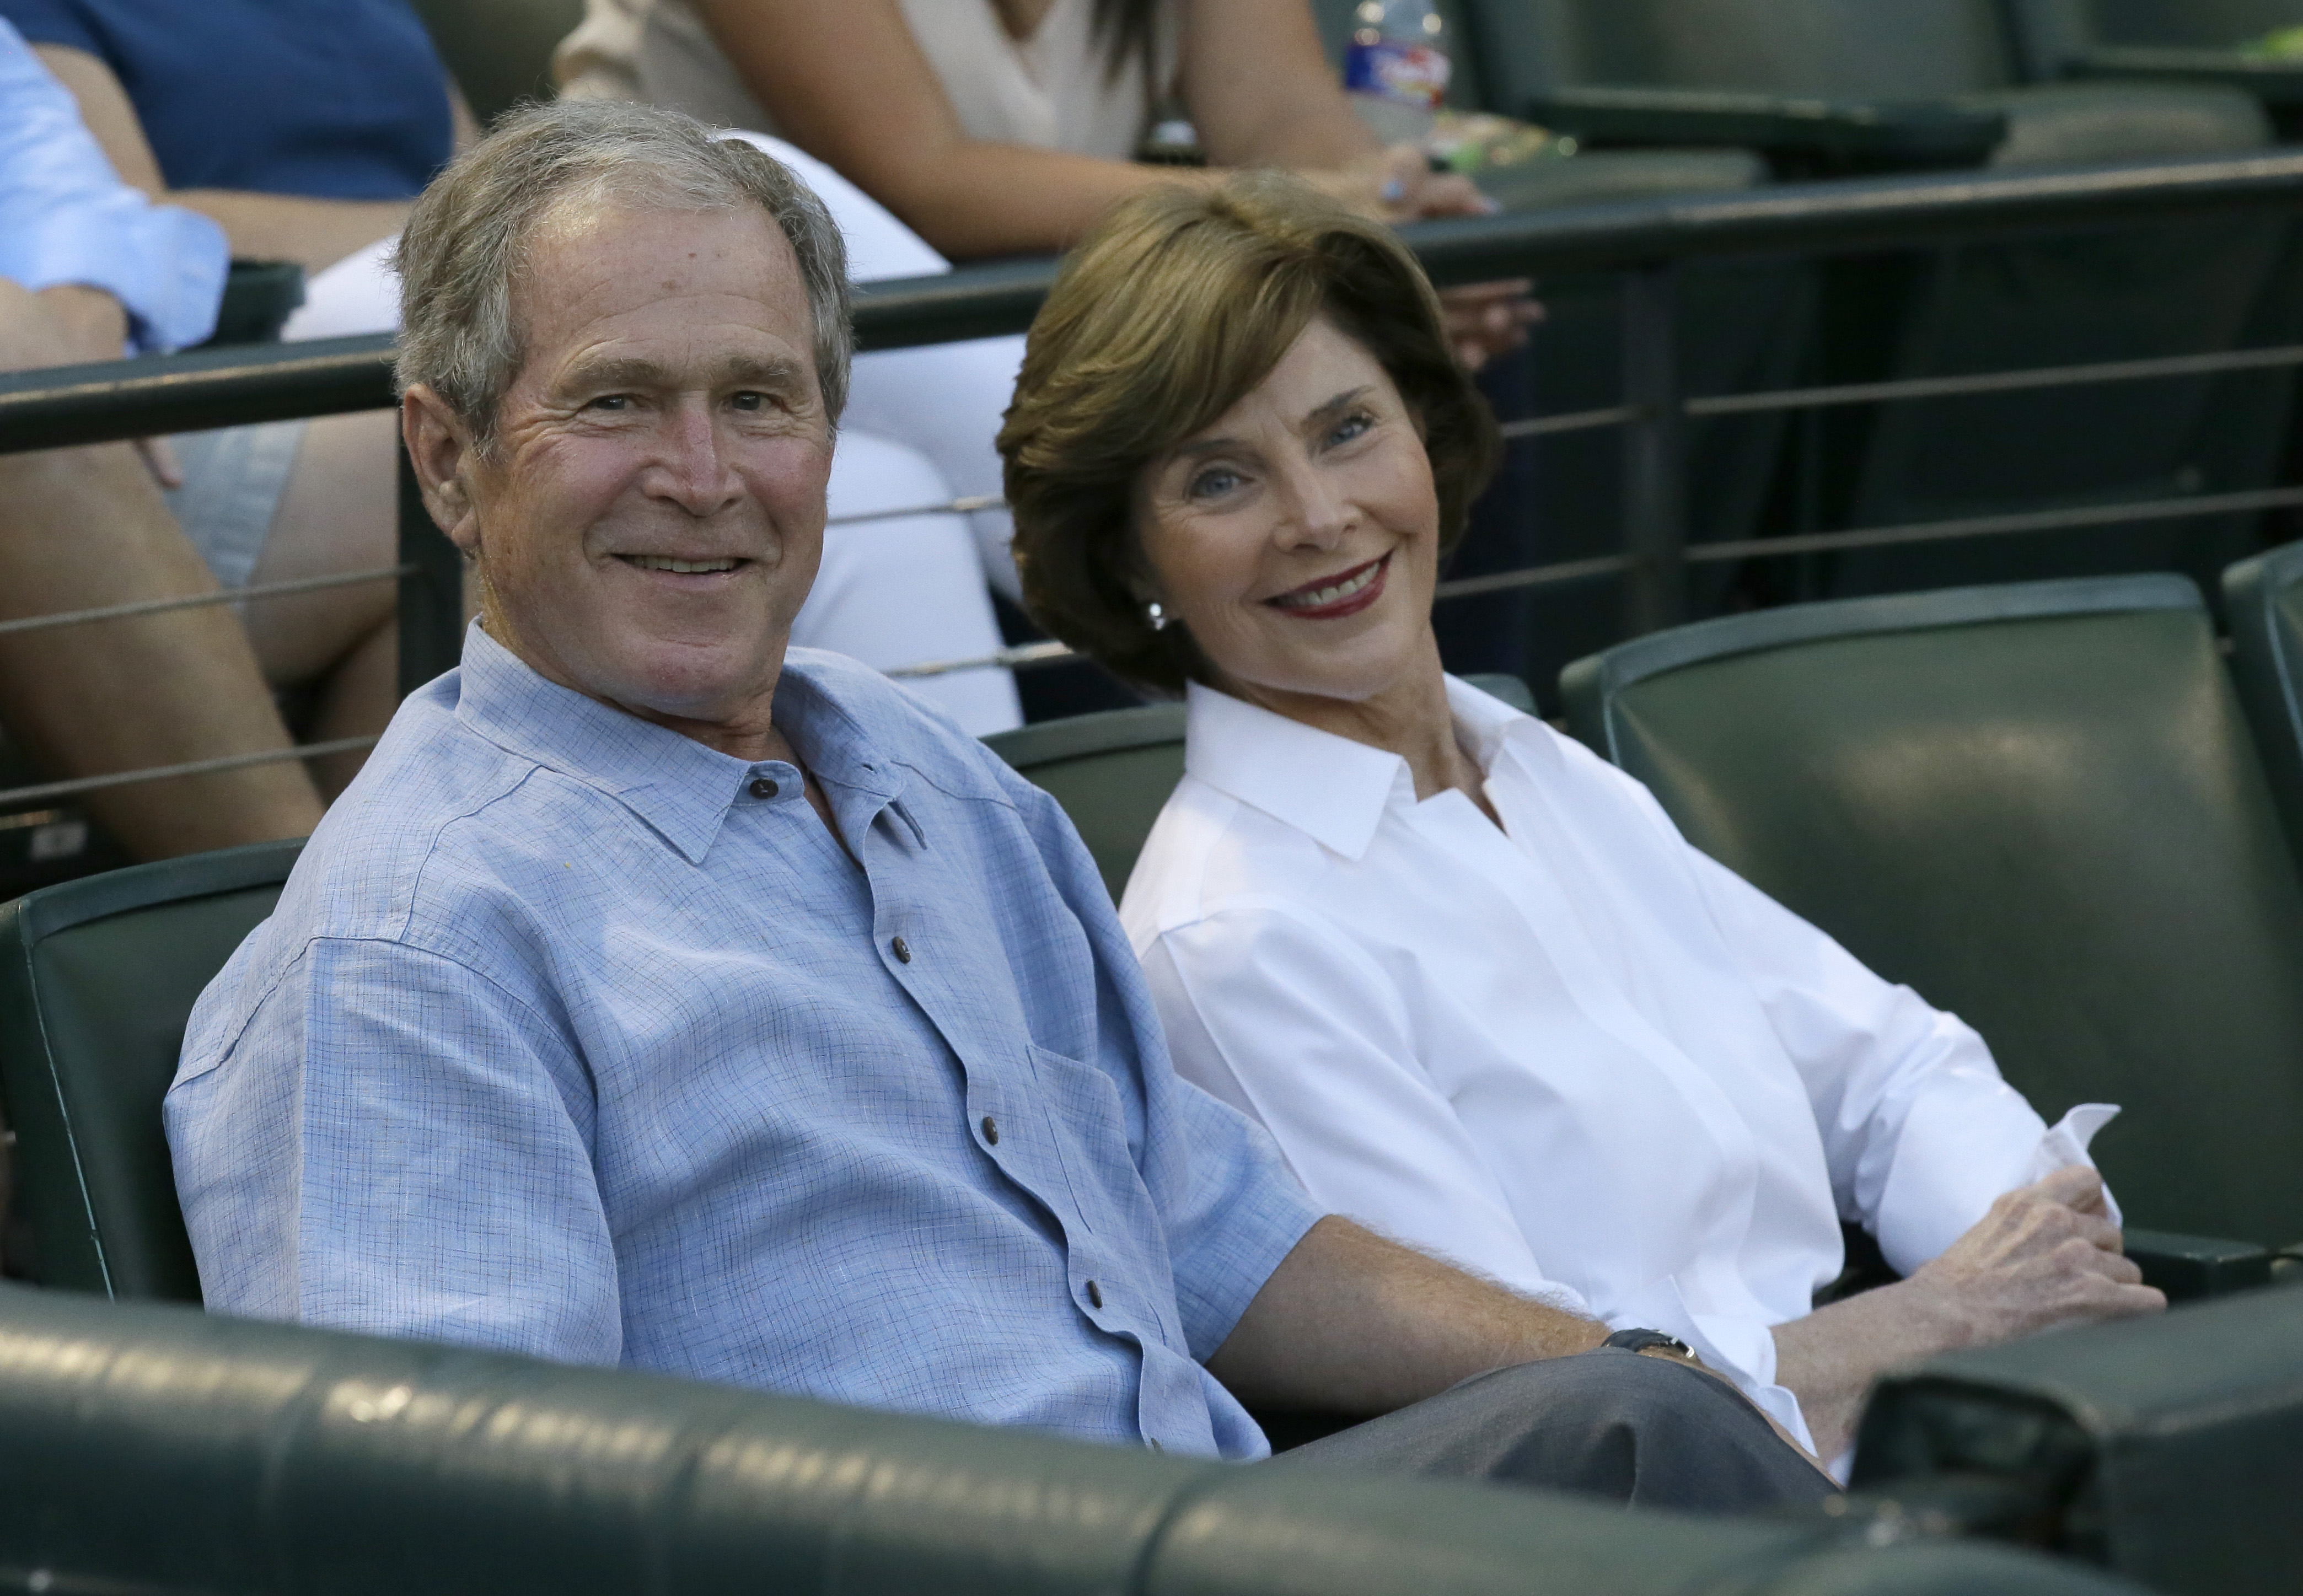 <div class='meta'><div class='origin-logo' data-origin='none'></div><span class='caption-text' data-credit='AP Photo/LM Otero'>Former President George Bush, left, smiles with his wife Laura Bush before a baseball game between the Seattle Mariners and Texas Rangers in Arlington, Texas.</span></div>